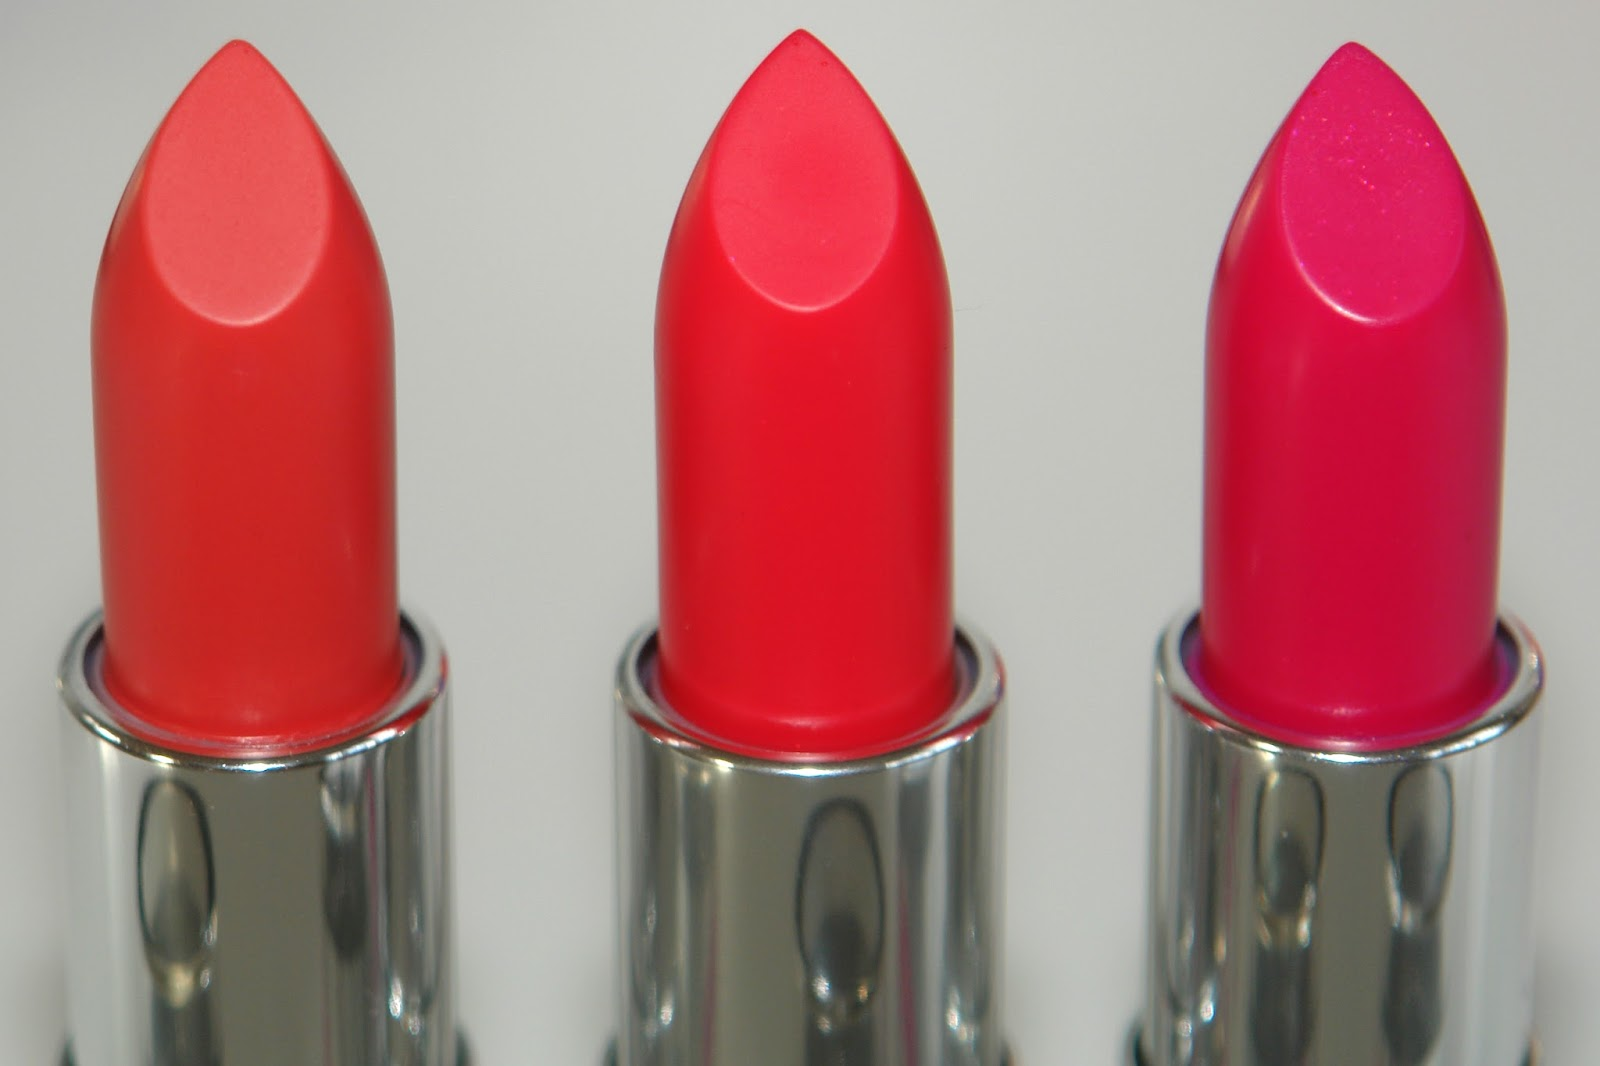 The Body Shop Colour Crush Shine Lipsticks, Sunset Romance, Fuschia Flirt, Magenta Be Rouge, swatches, lip swatches, photos, UK blogger, beauty, make up, review,